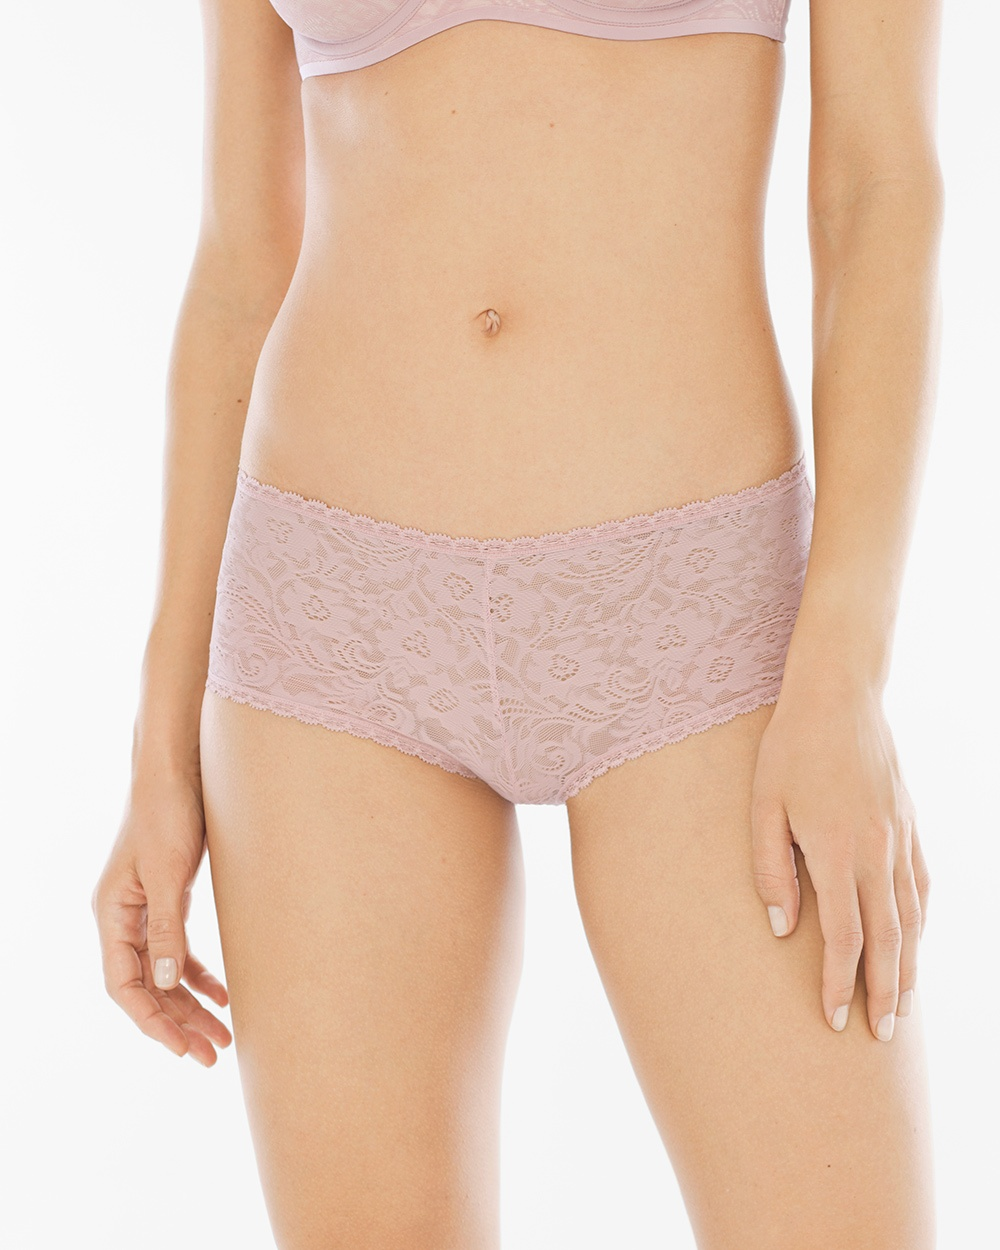 Enticing Allover Lace Boyshort. Soma. Available in multiple colors. $15 or 5 for $39.